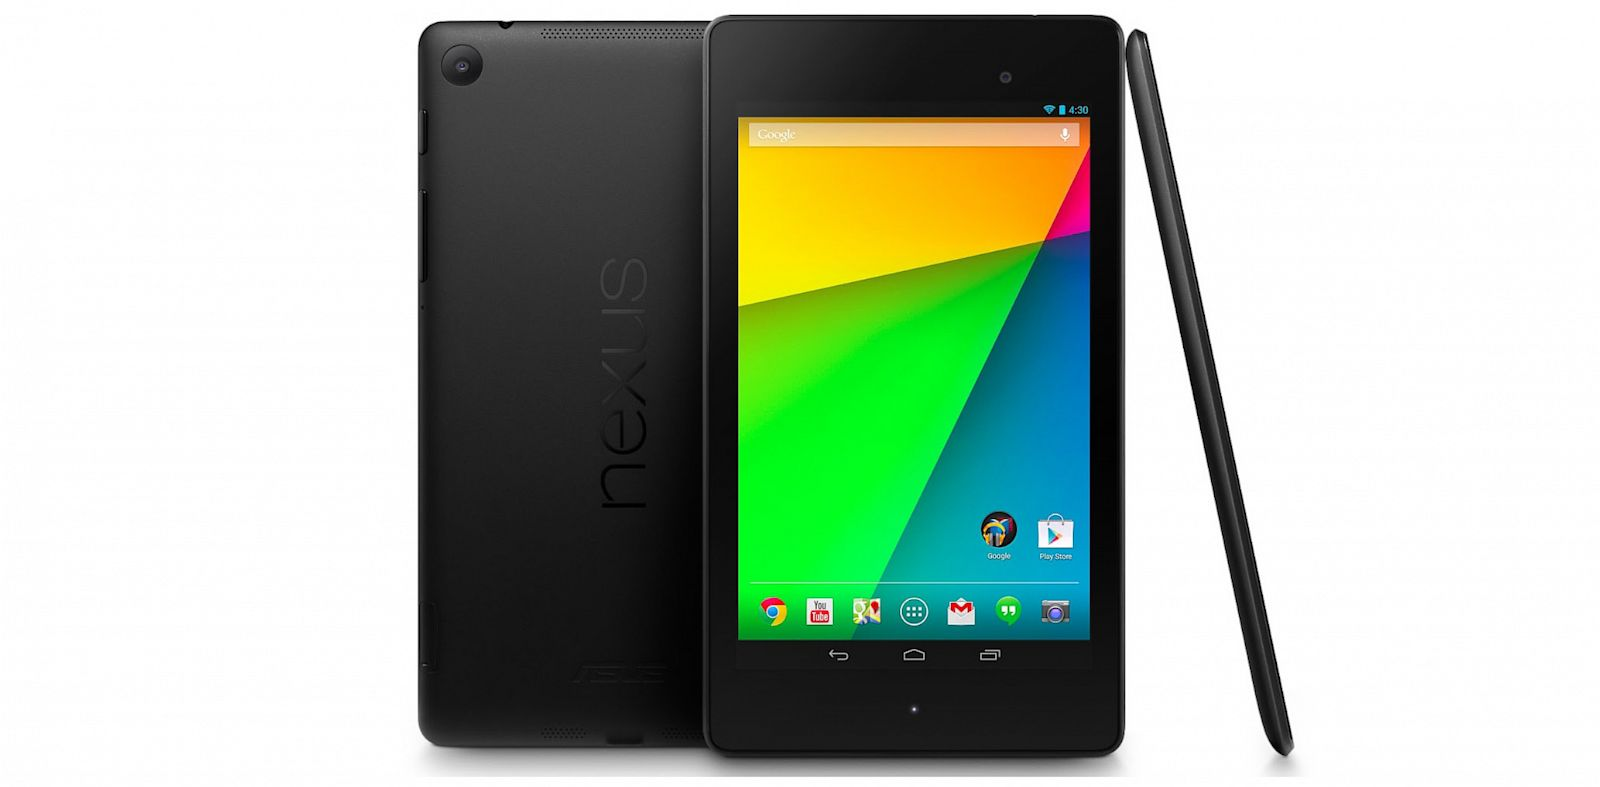 PHOTO: Googles new Nexus 7 has a higher resolution screen and cameras.